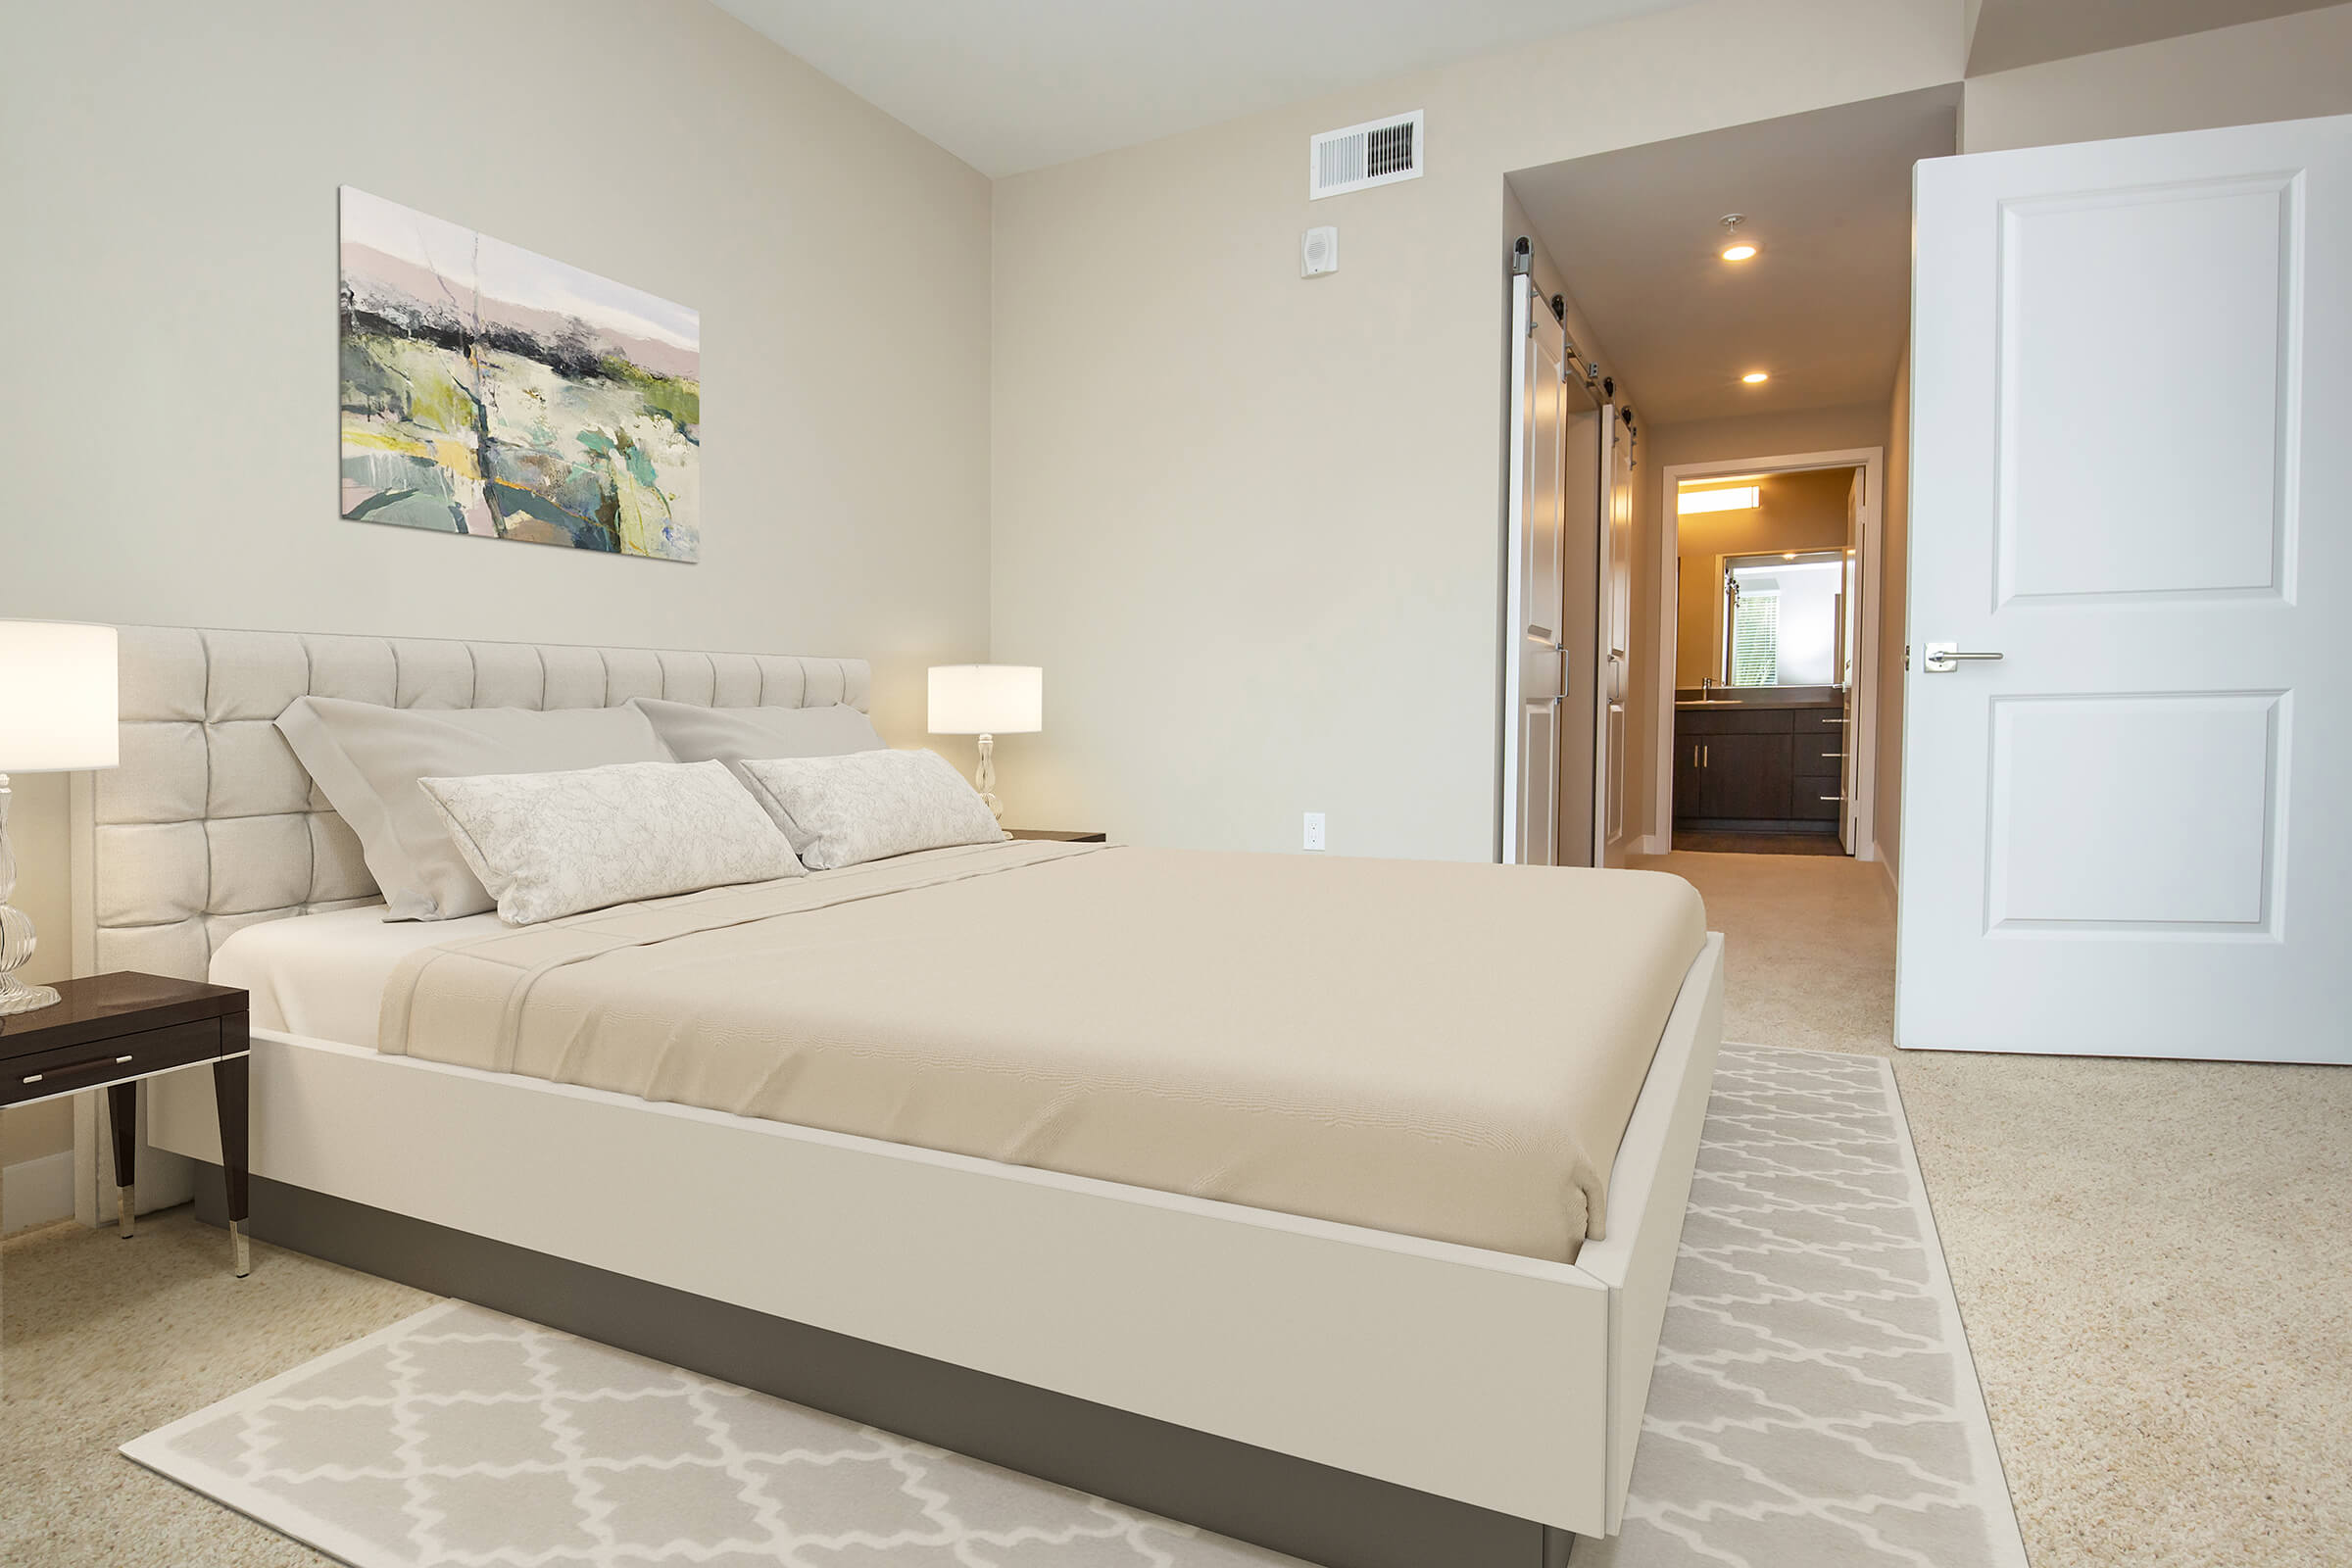 Bedroom with tan bedding